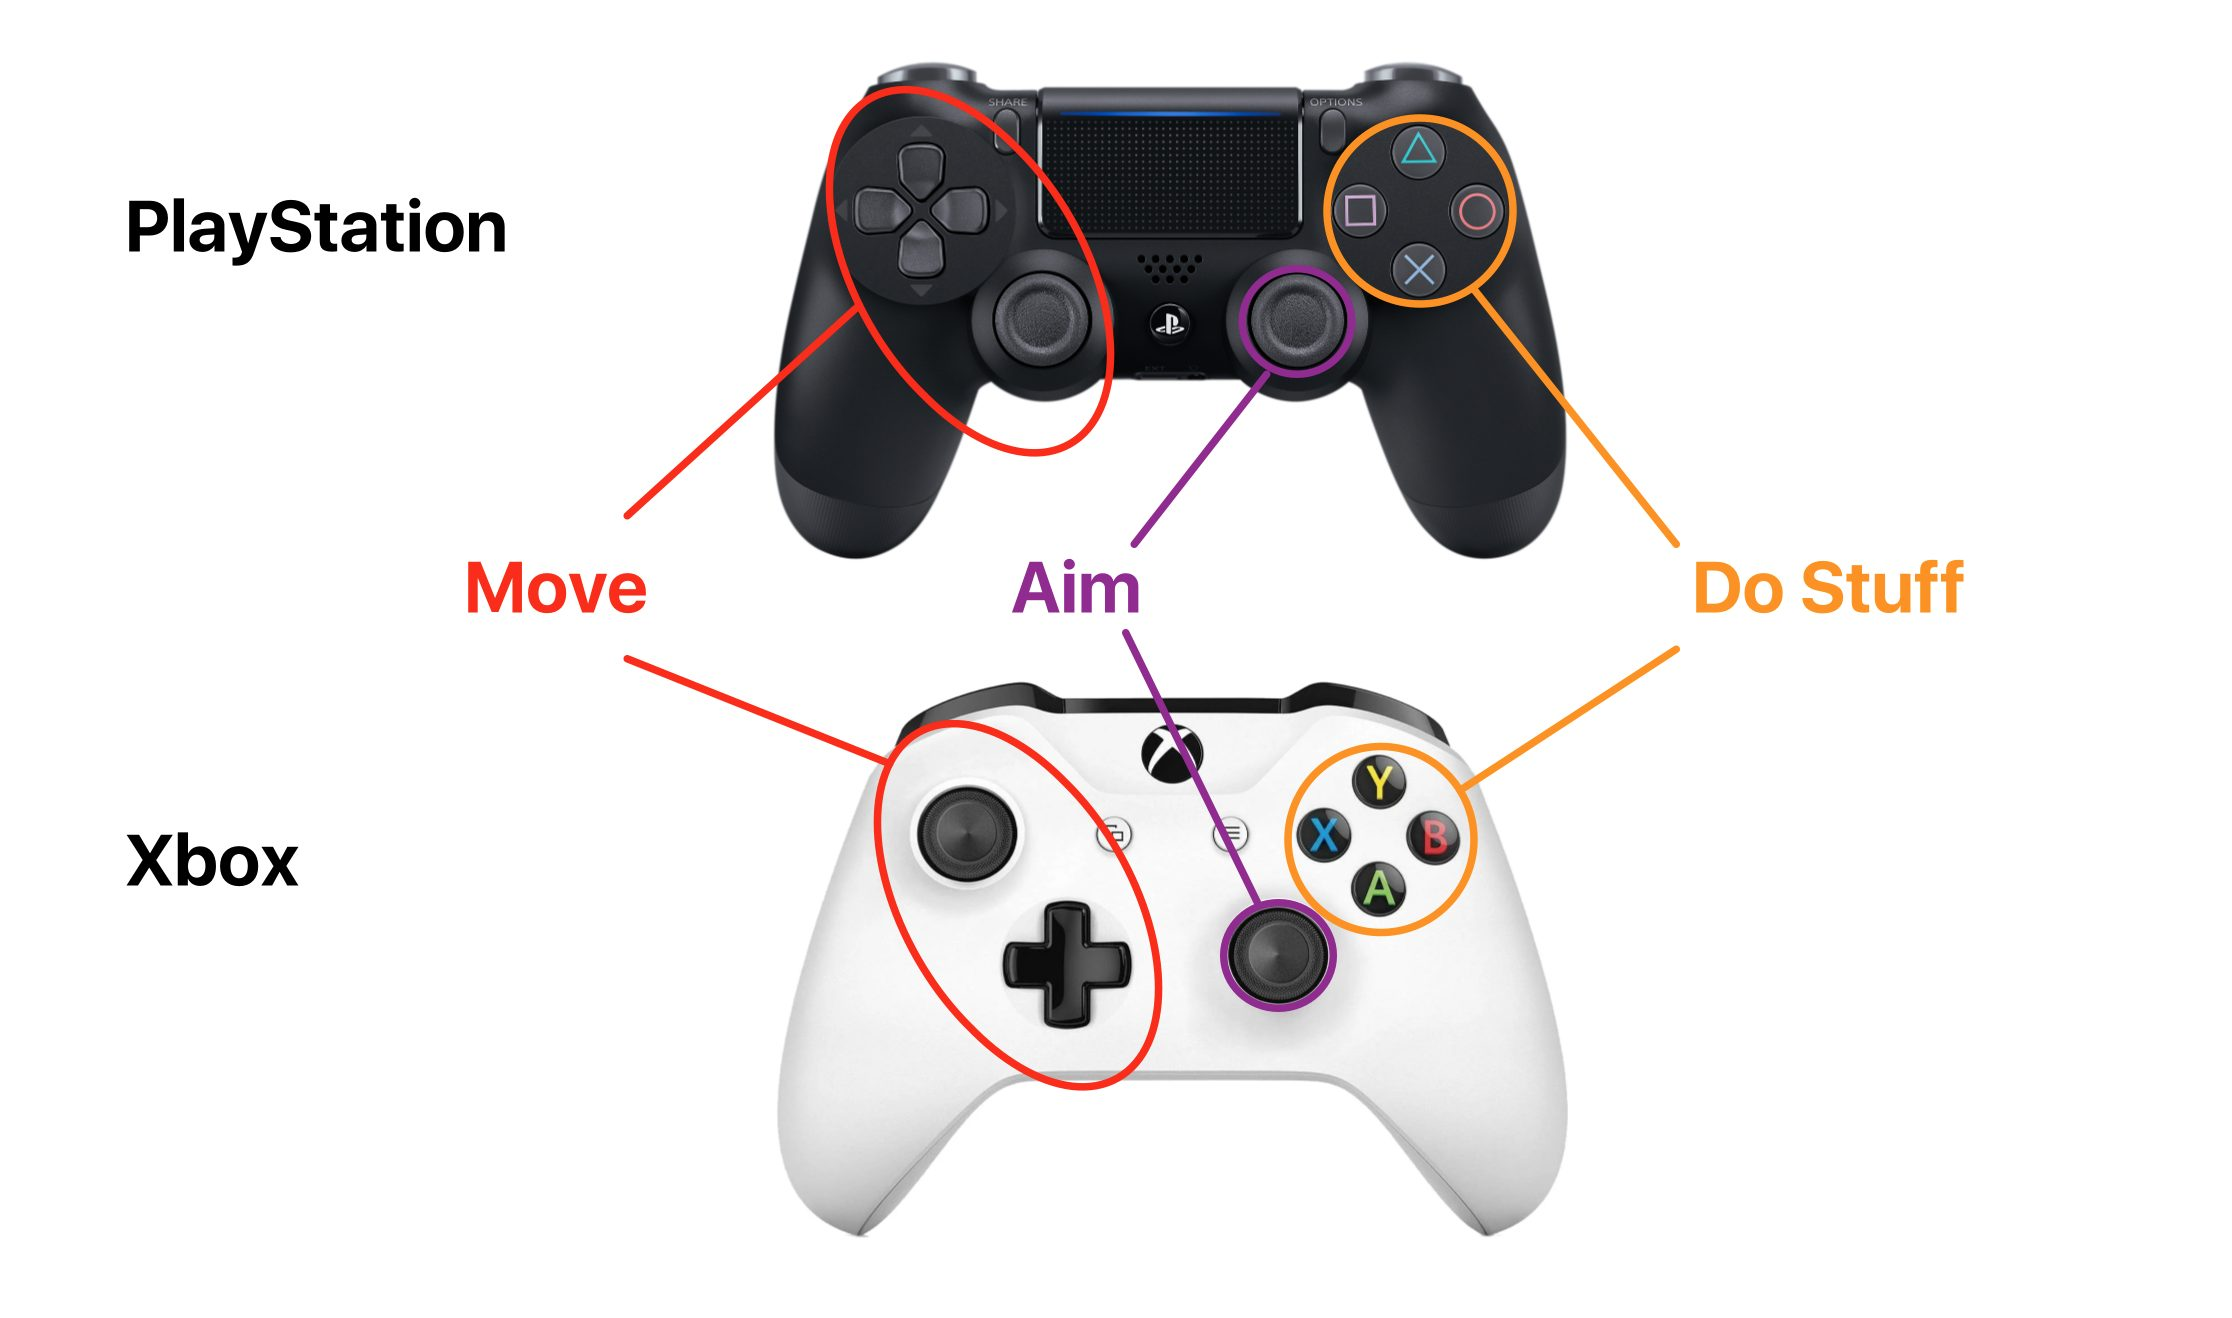 Common controller conventions